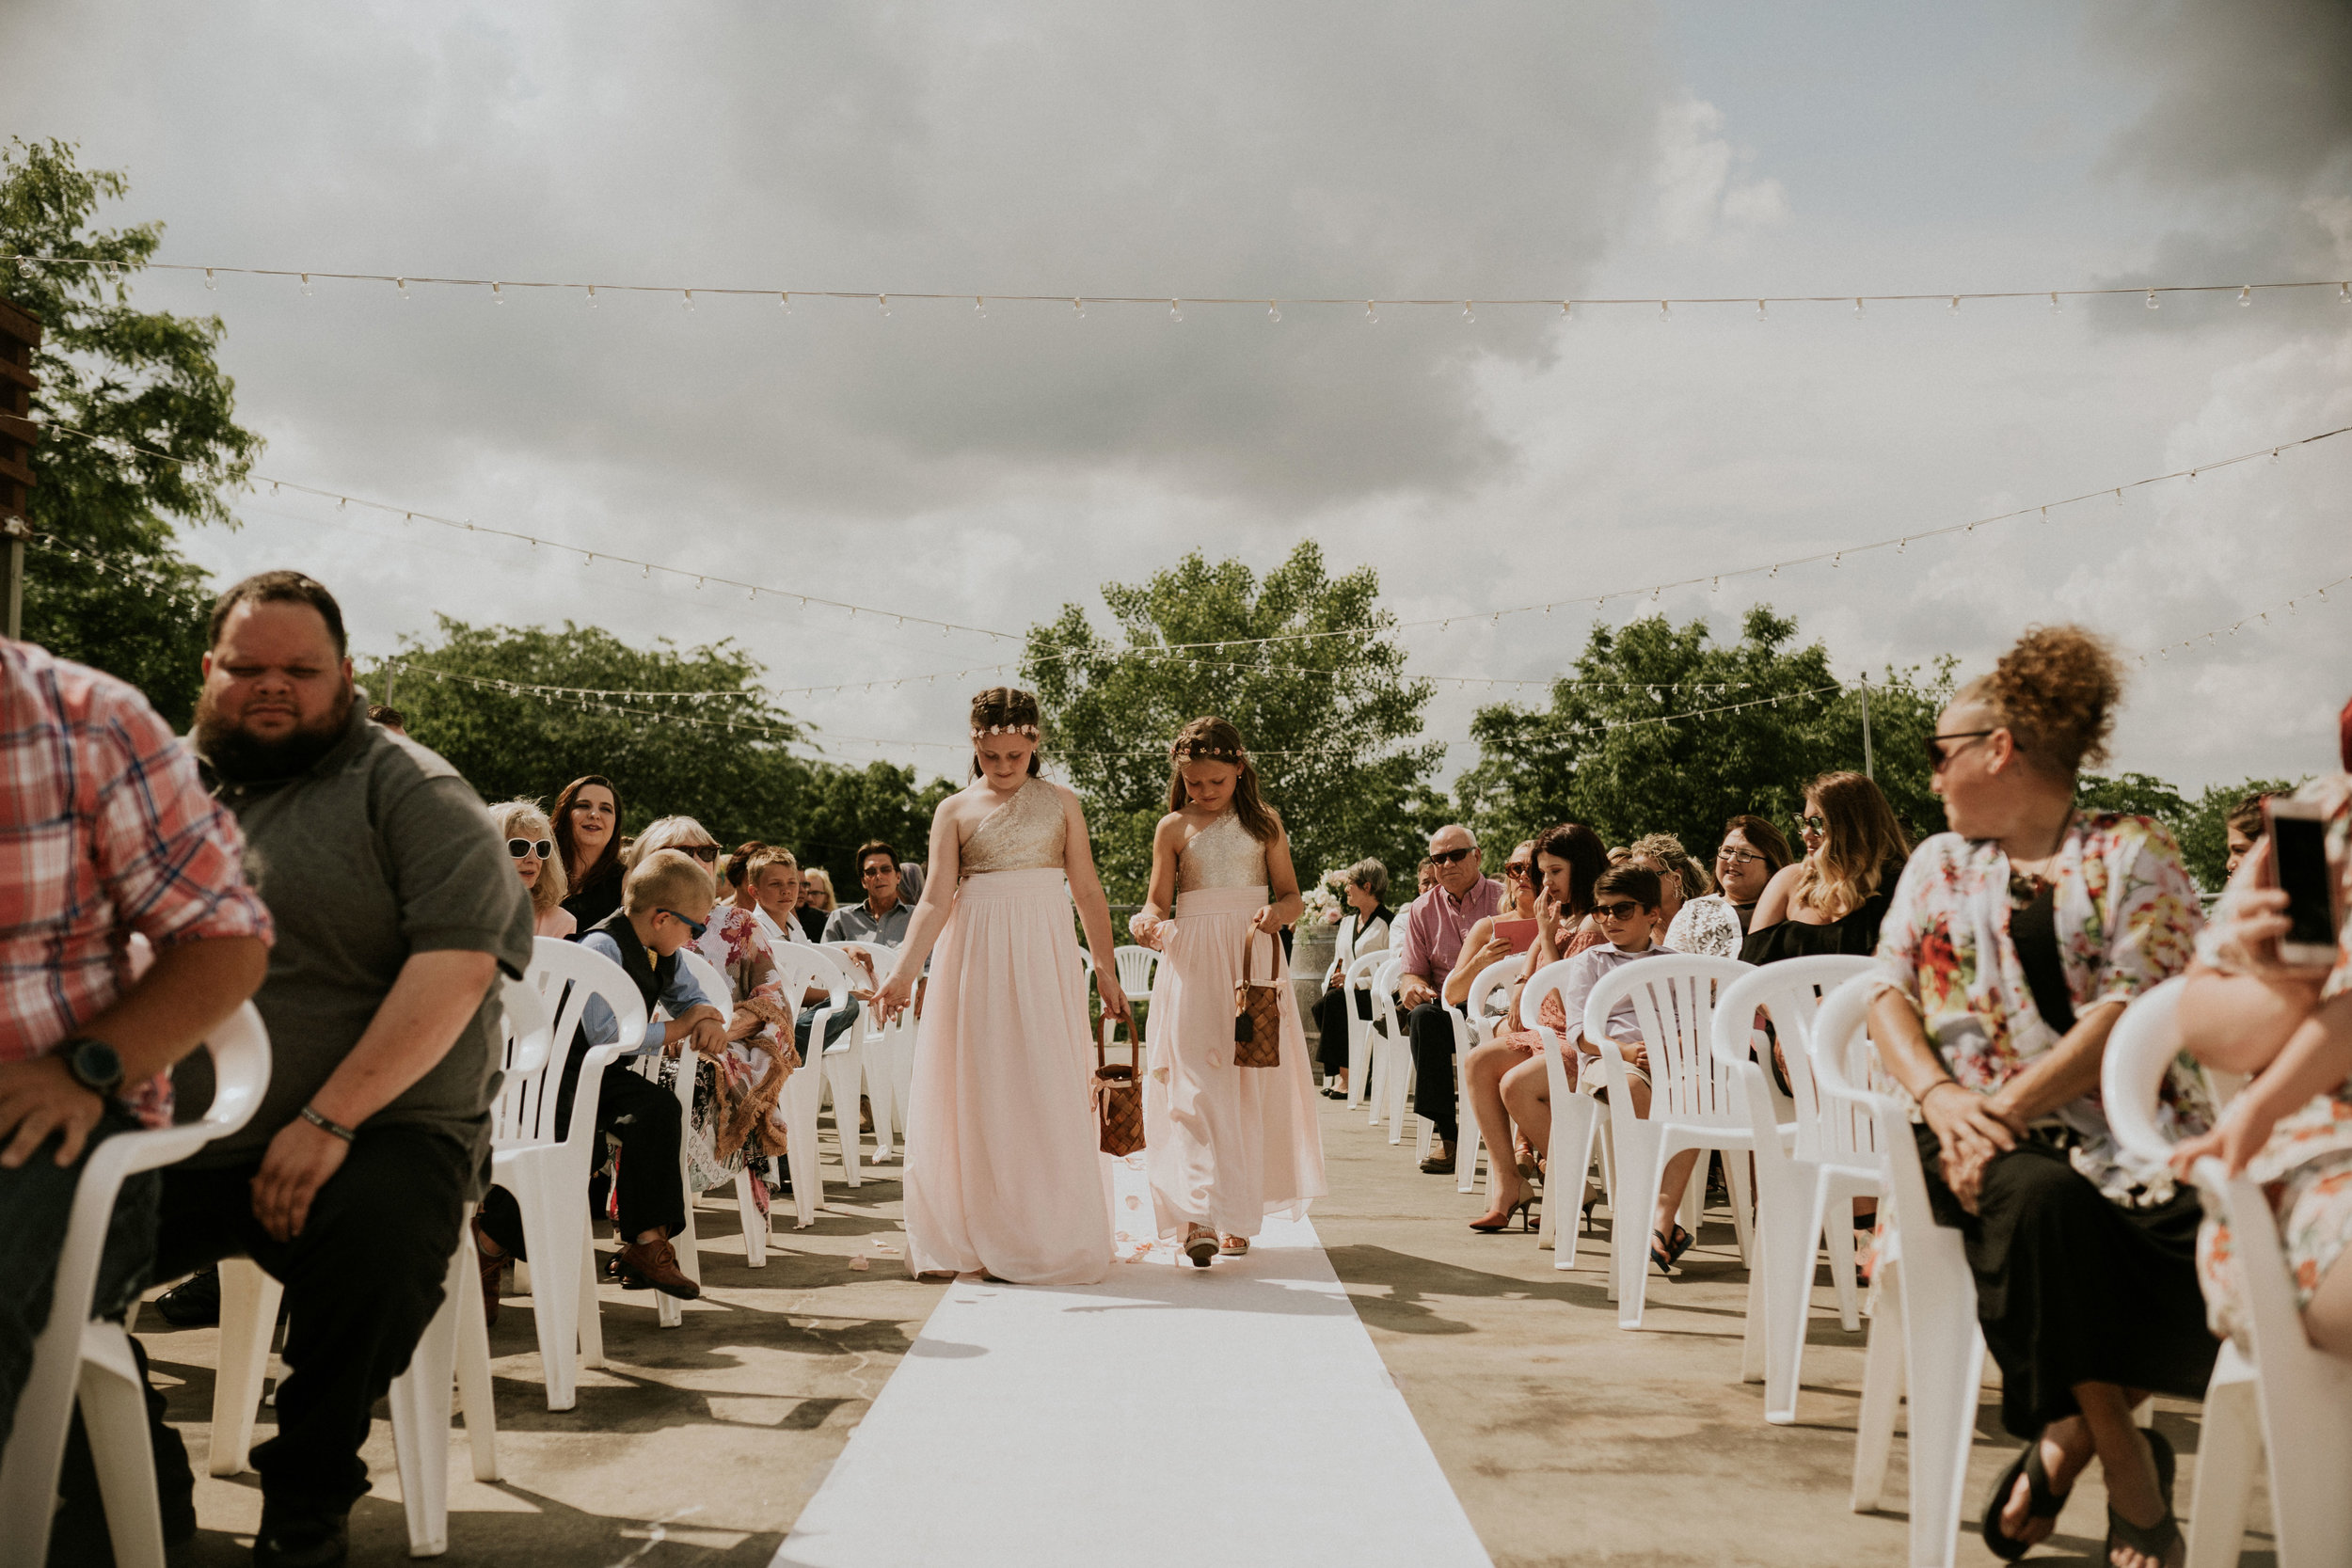 two-flower-girls-walking-down-aisle-wedding-summerset-winery-indianola-iowa-raelyn-ramey-photography.jpg